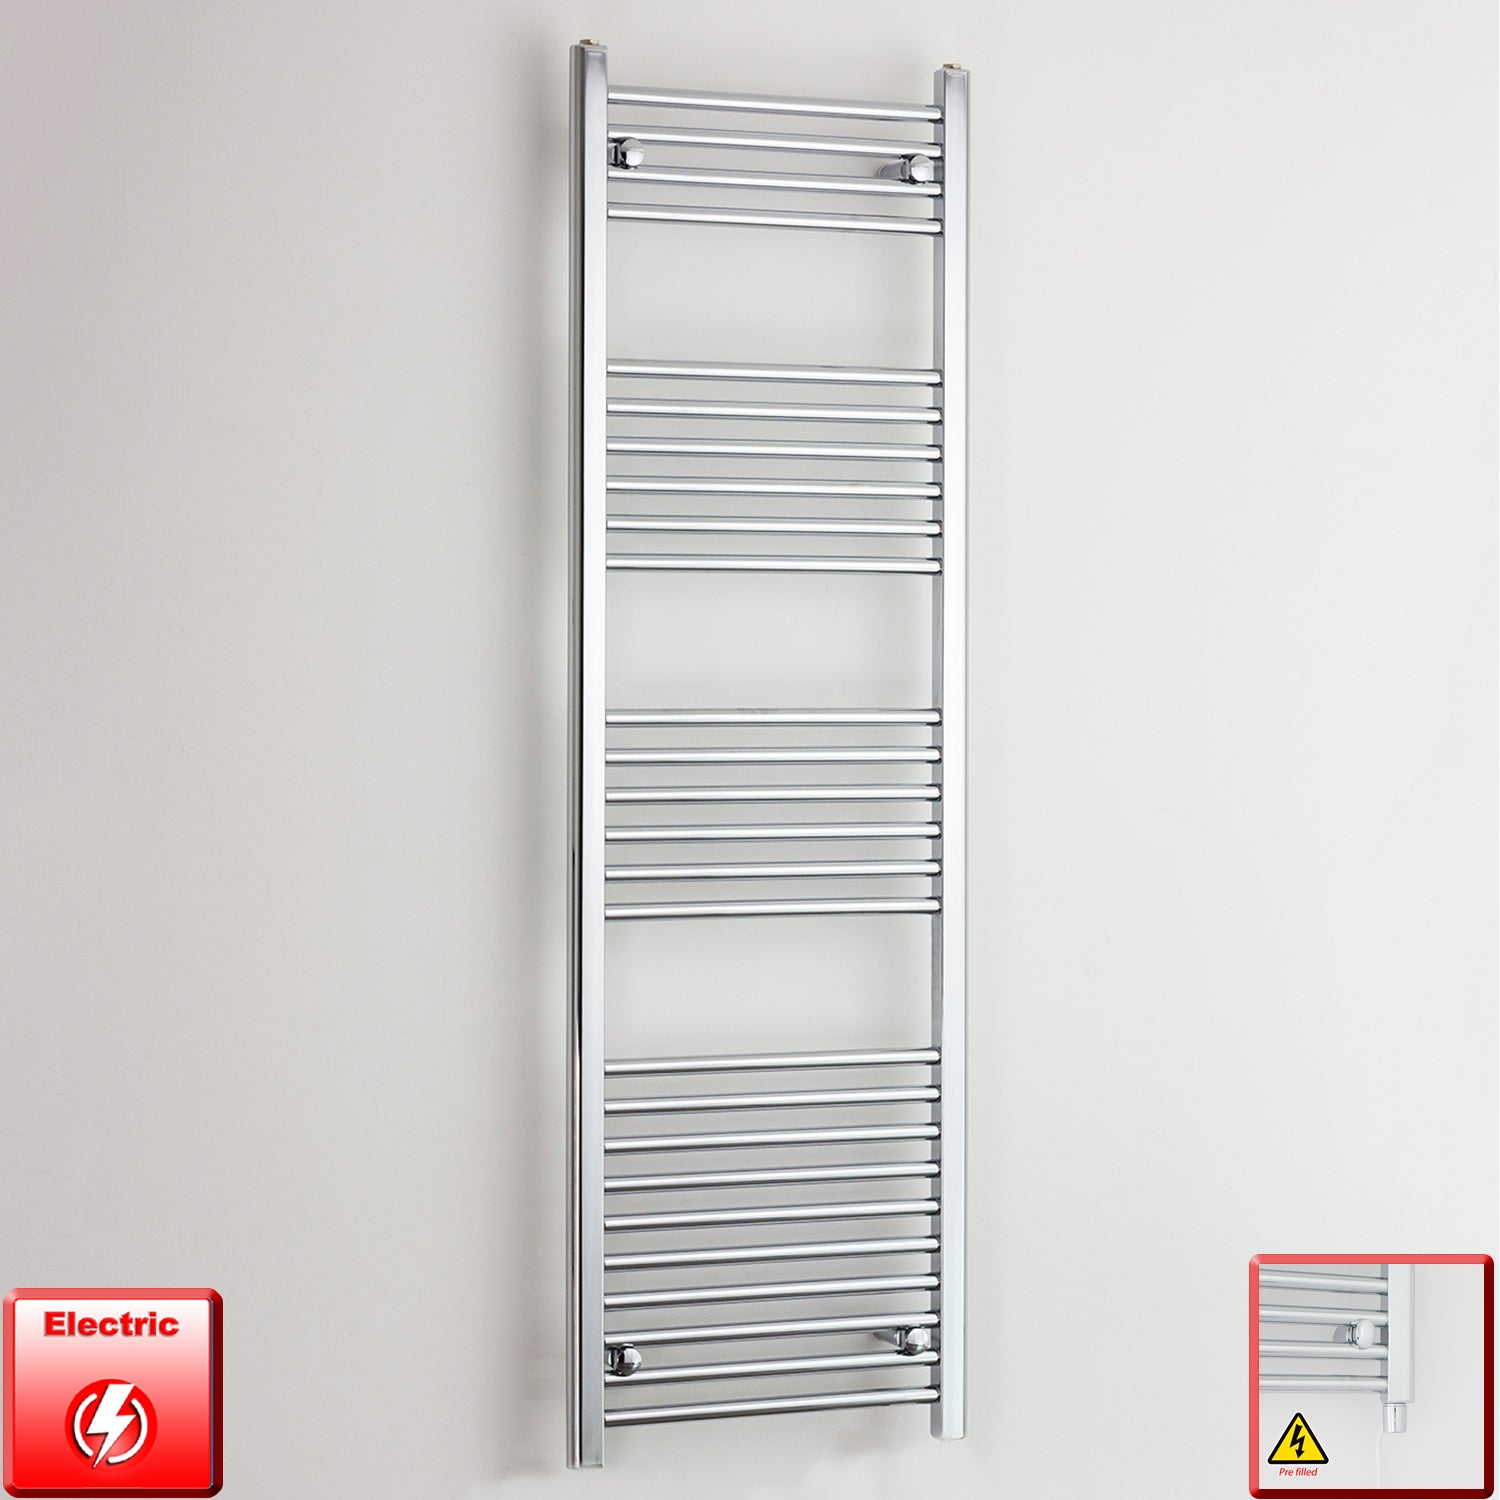 500mm Wide 1600mm High Flat Or Curved Chrome Pre-Filled Electric Heated Towel Rail Radiator HTR,Straight / Single Heat Element